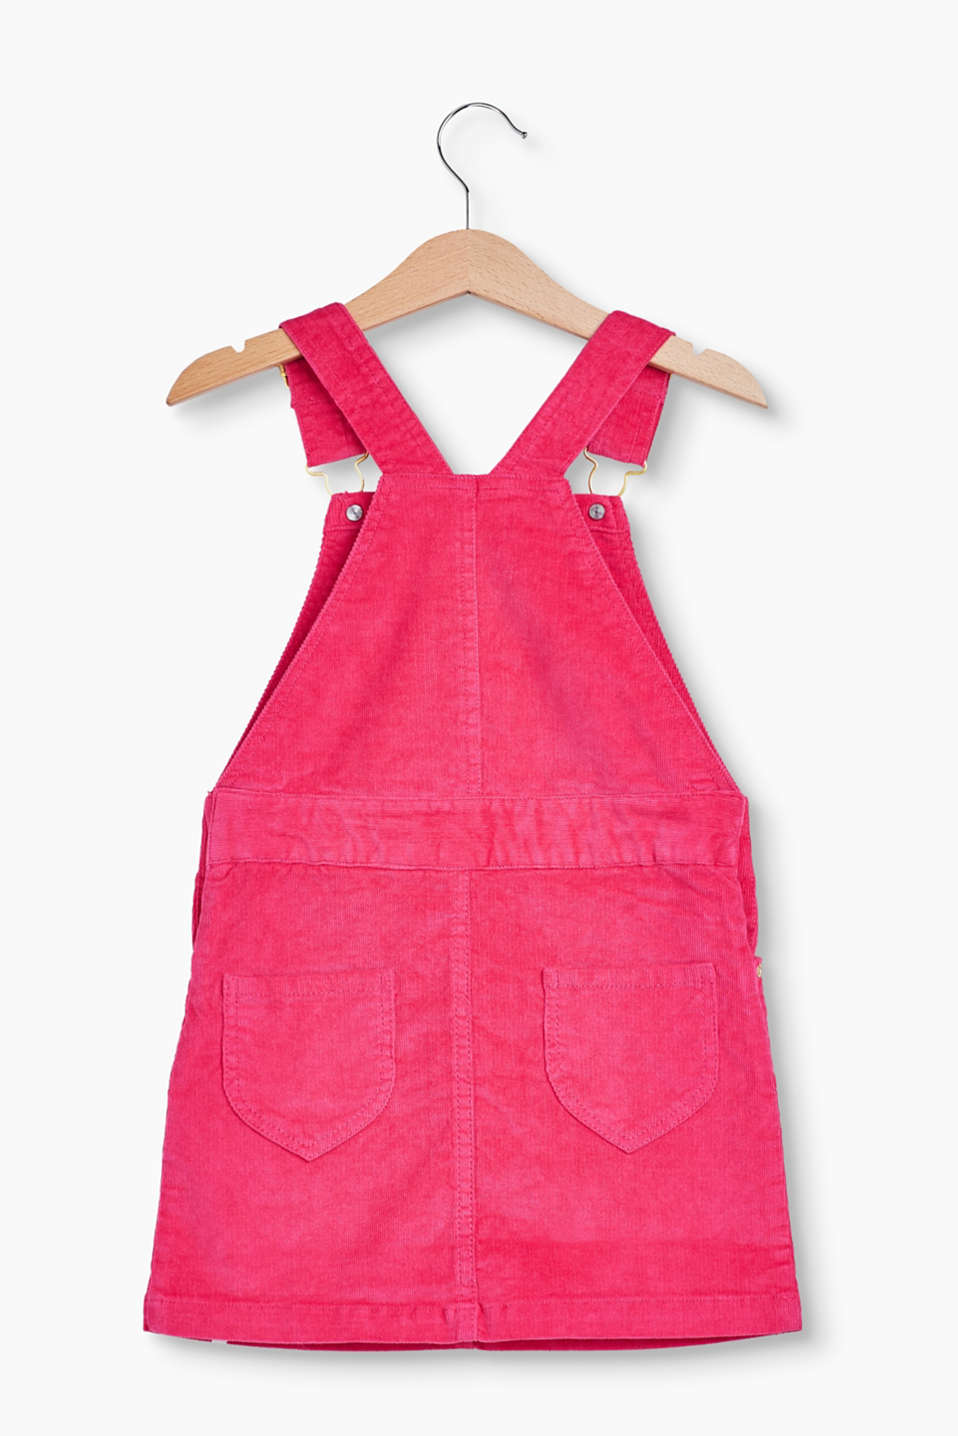 Velvety dungarees made of stretch cotton